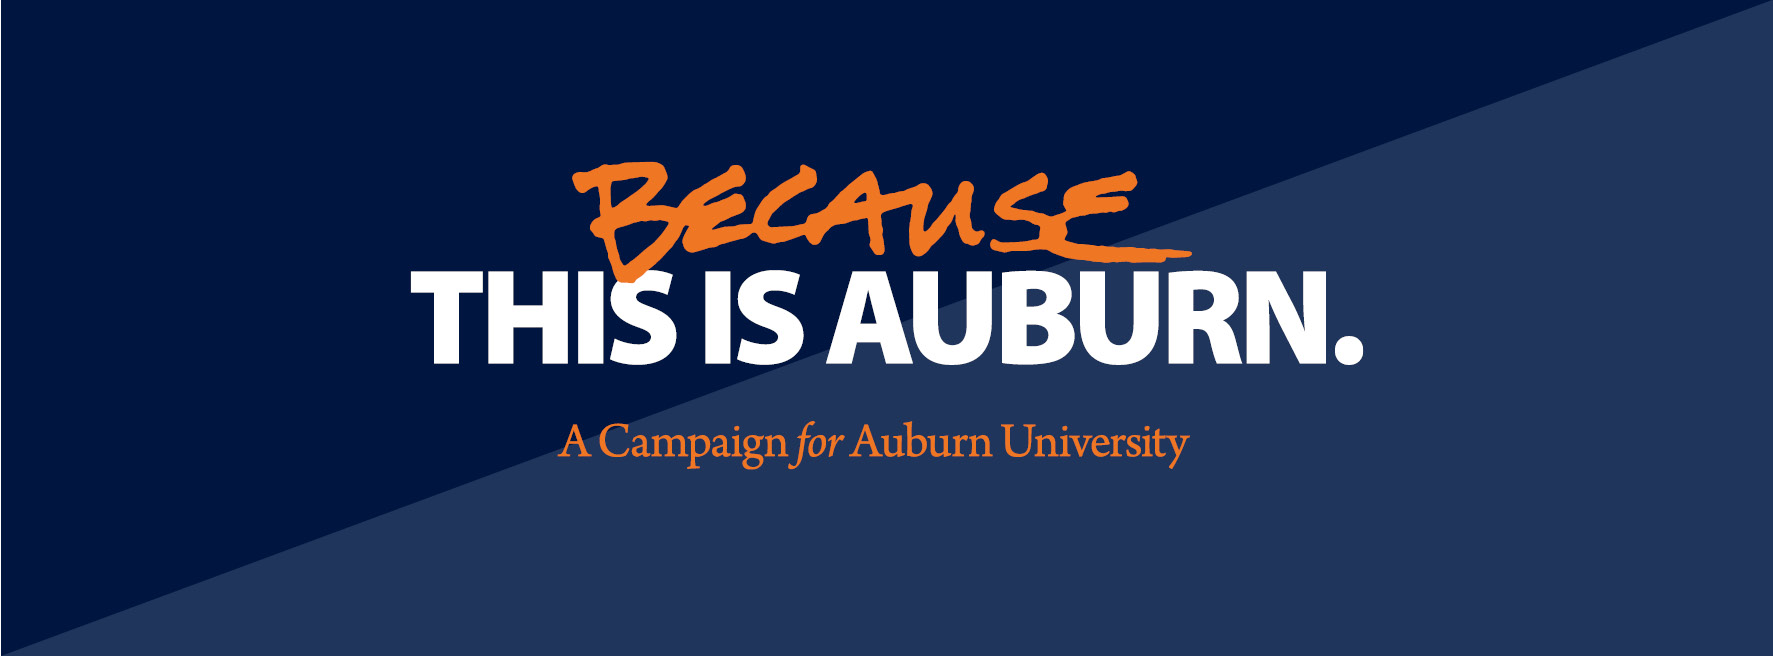 Because This Is Auburn Becauseau